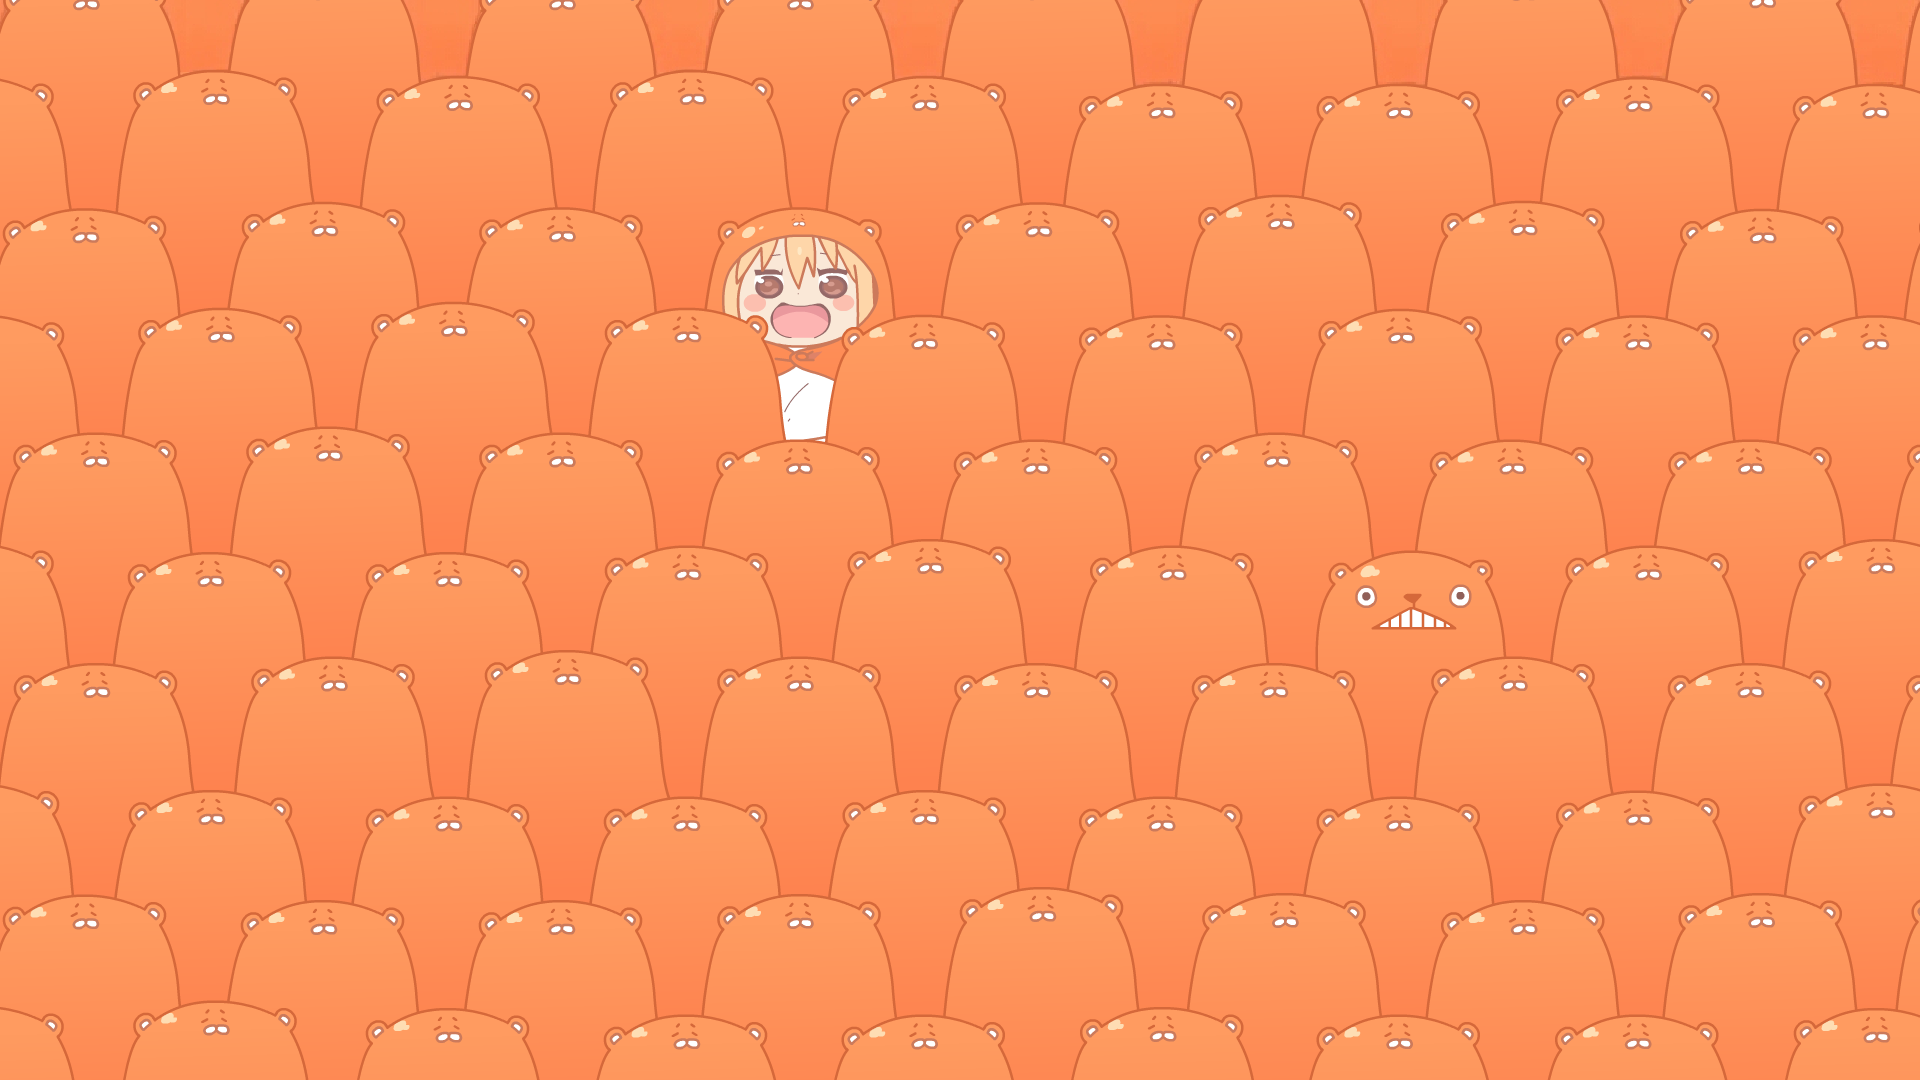 600 Wallpaper Anime Umaru Hd  Terbaru